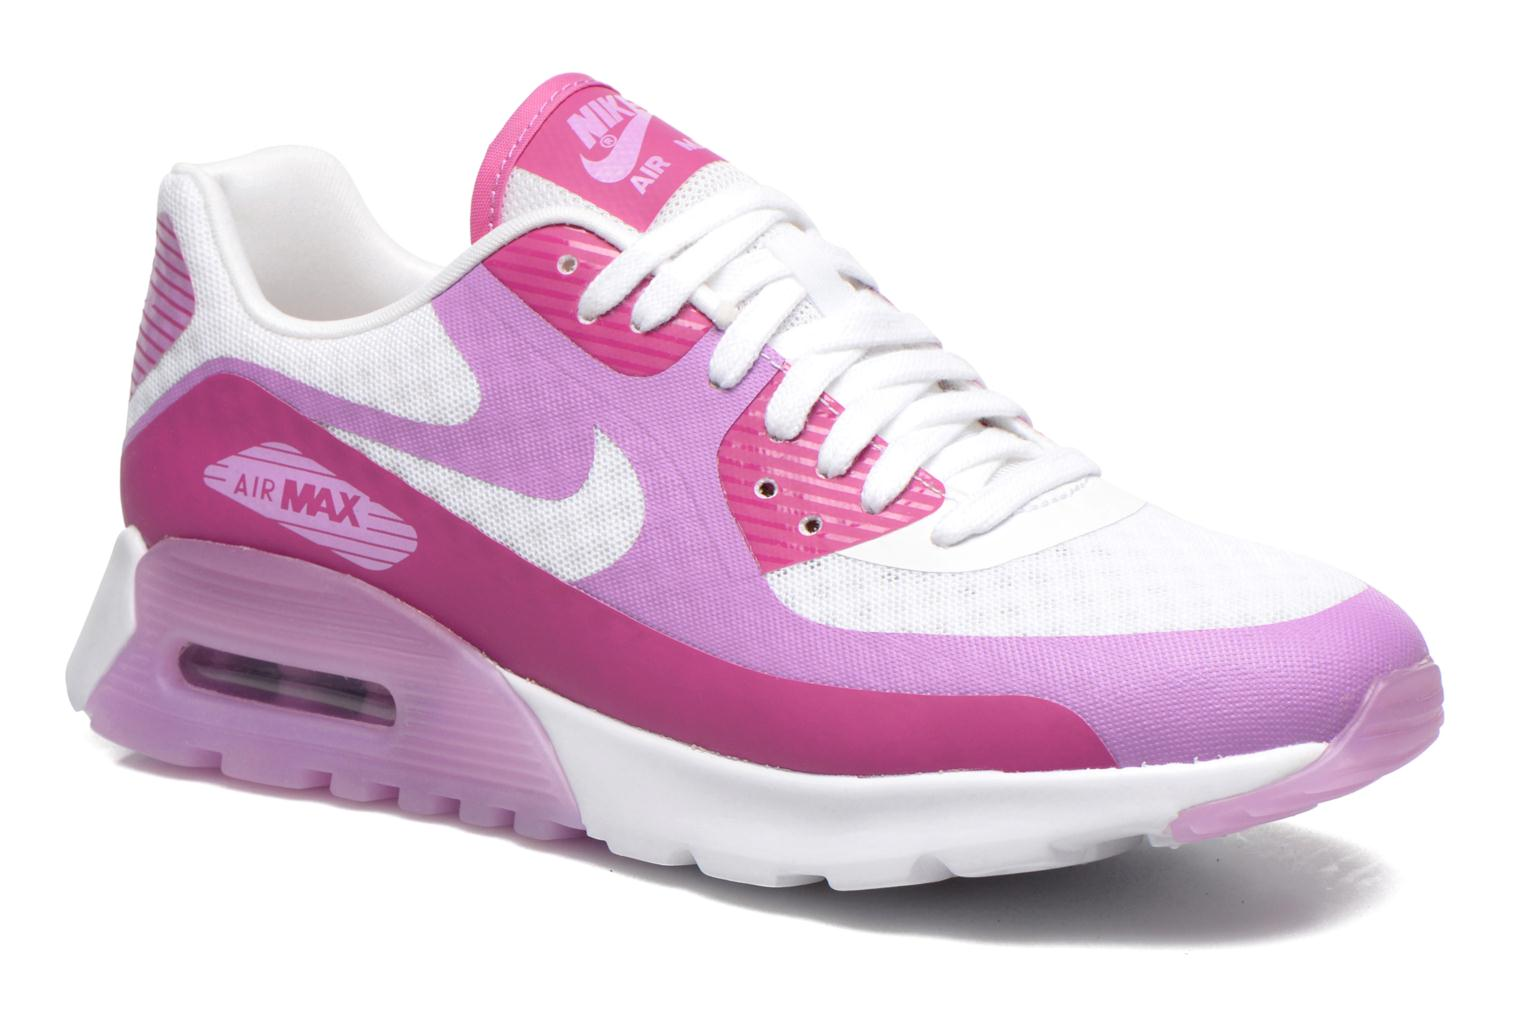 W Air Max 90 Ultra Br White/Fuchsia Glow-Fchs Flash